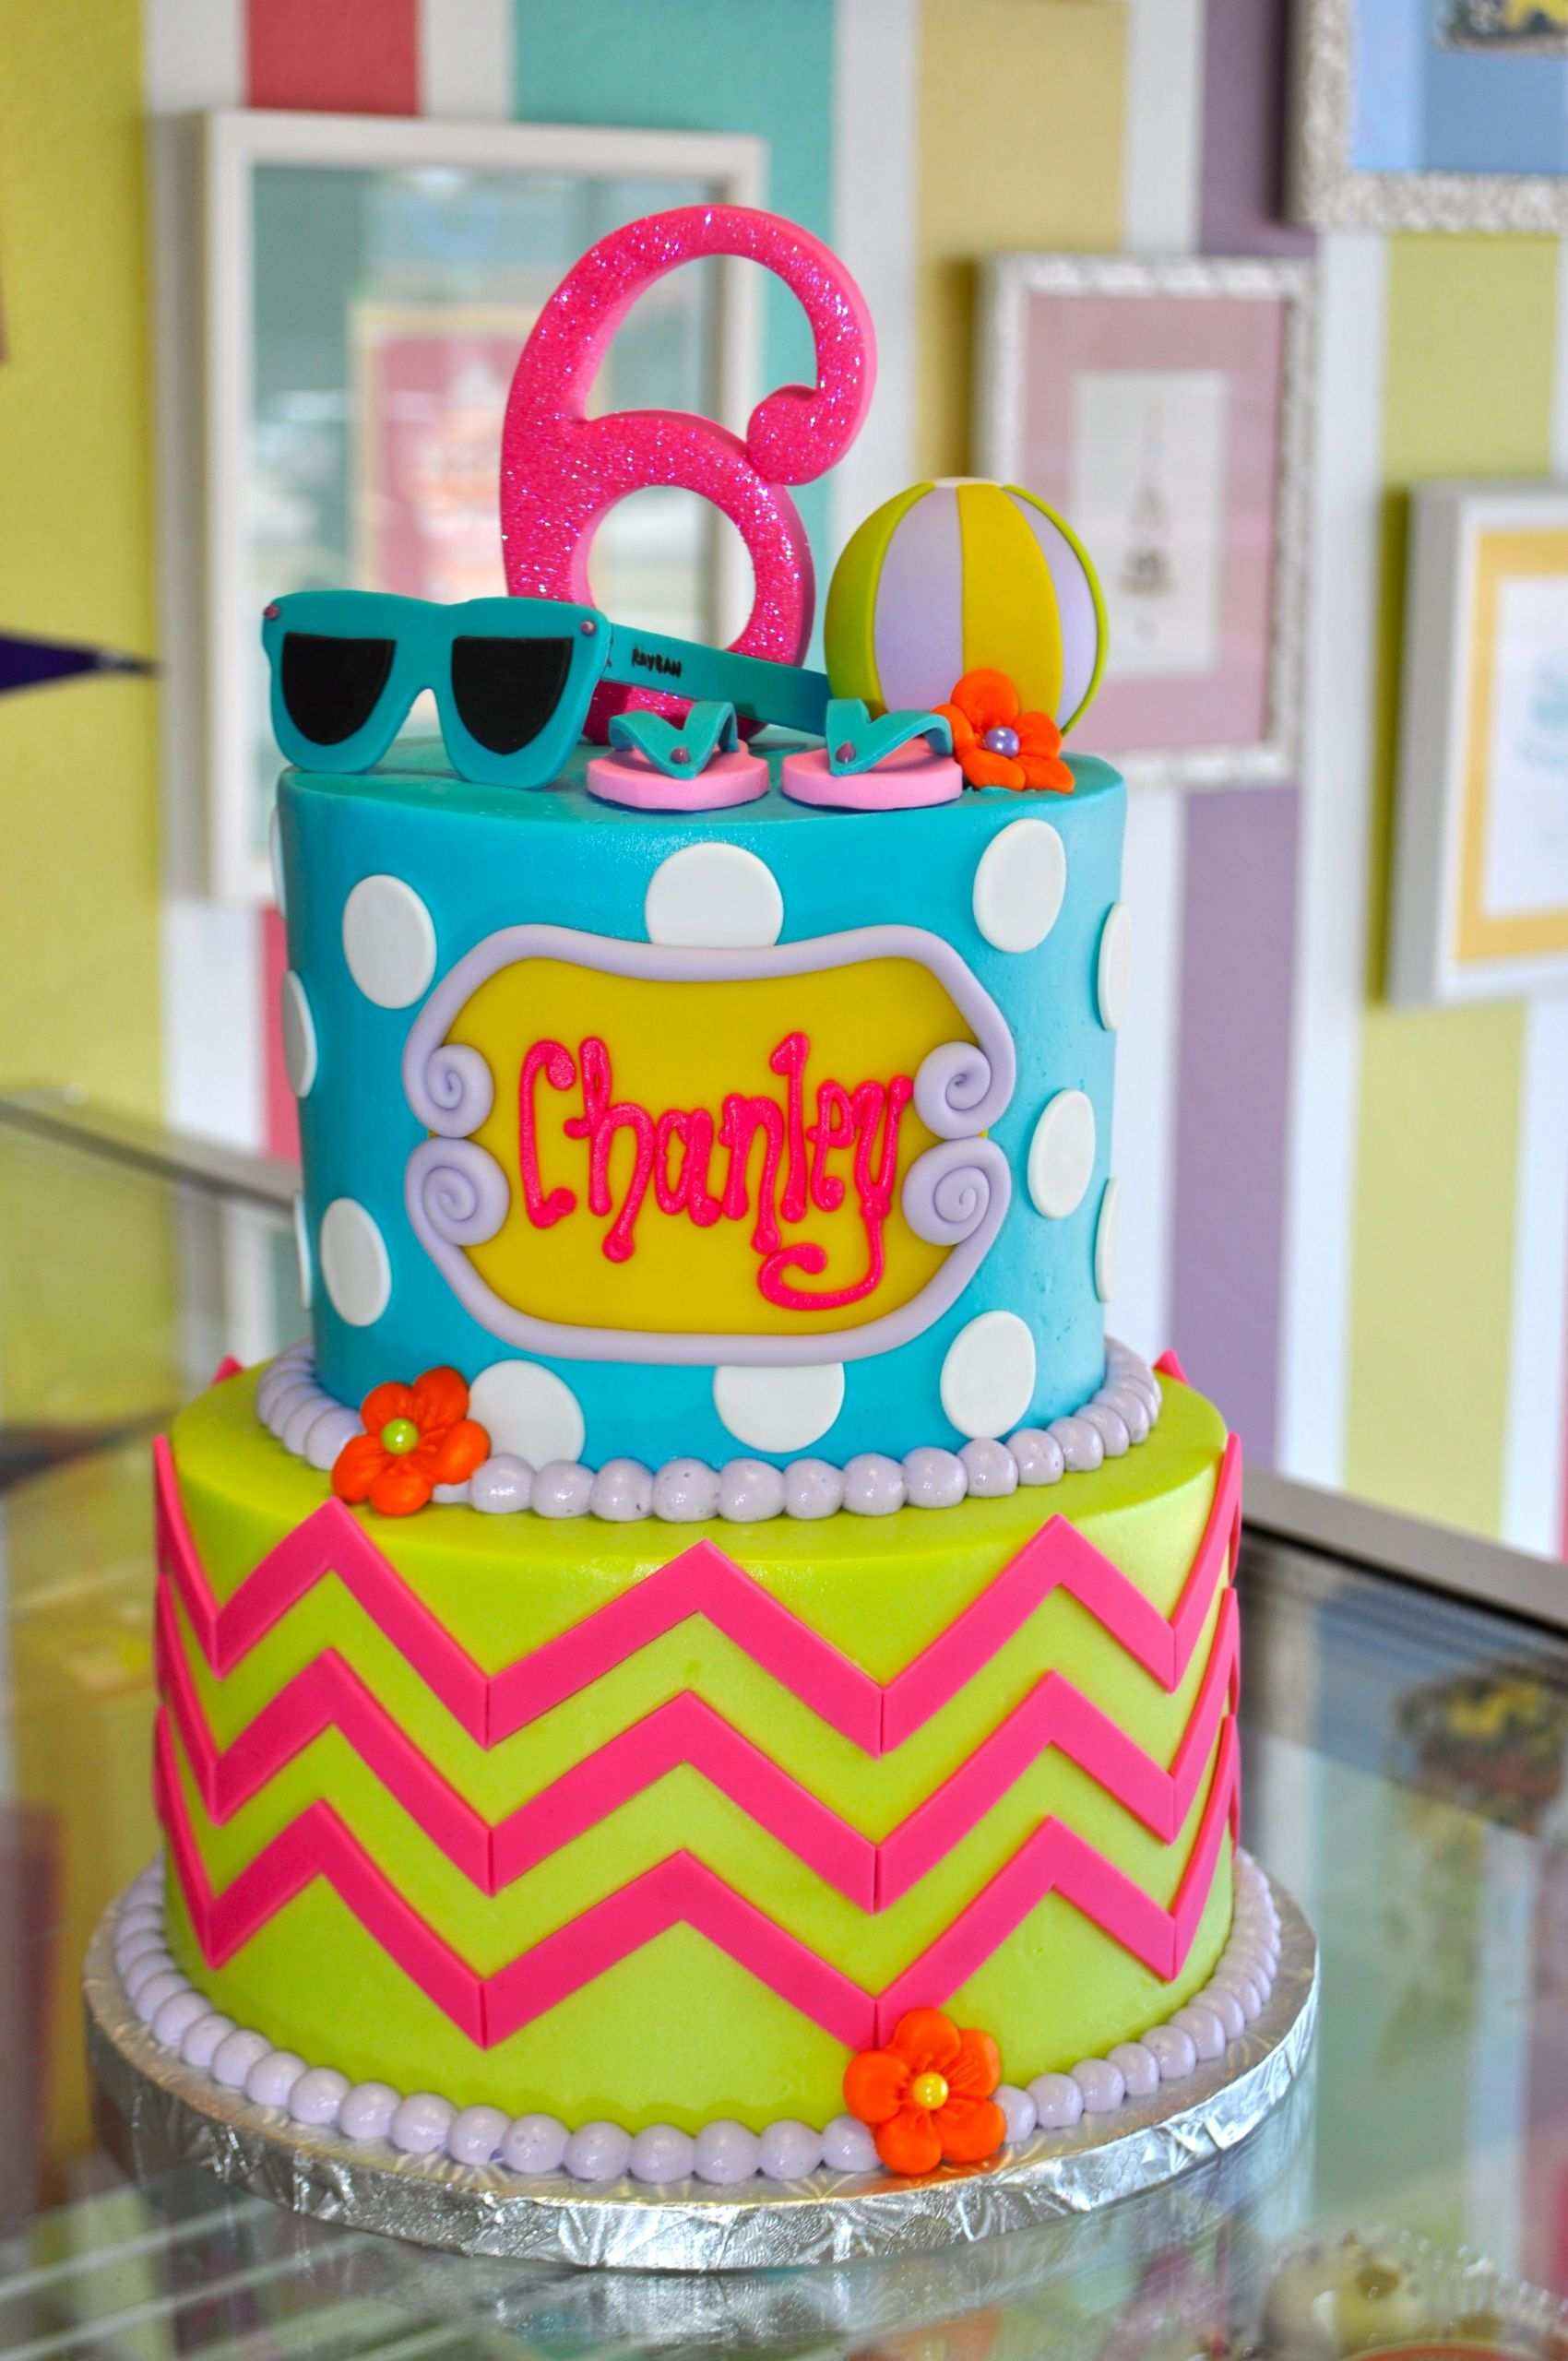 Pool Party Cake Ideas For Birthdays  Pin by Roxi Simpson on For my little princess